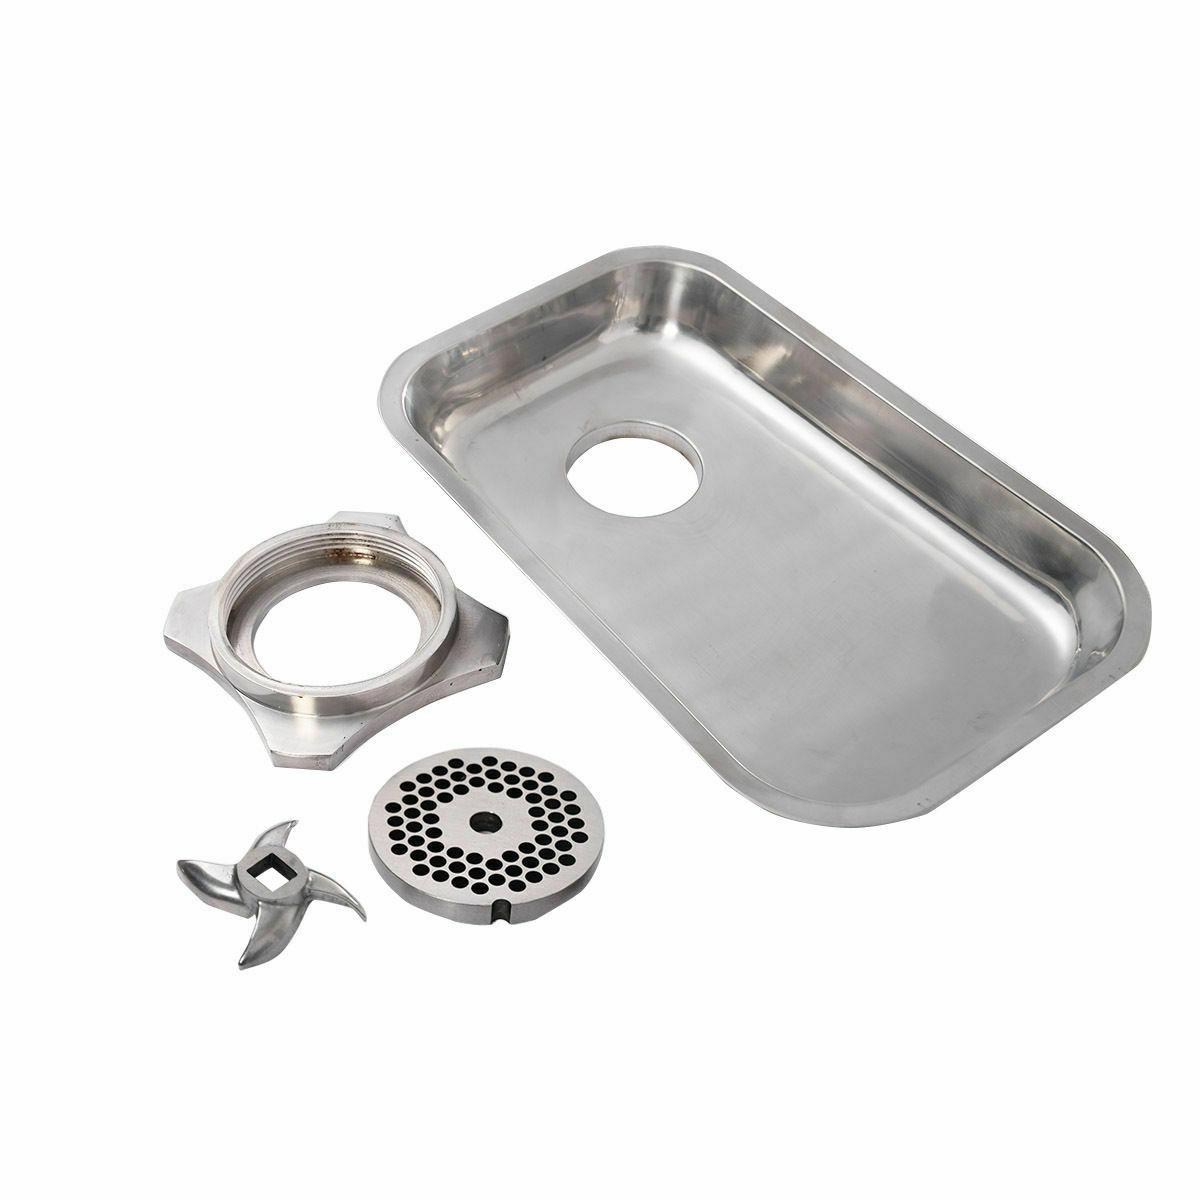 New Commercial Stainless Grinder No #12